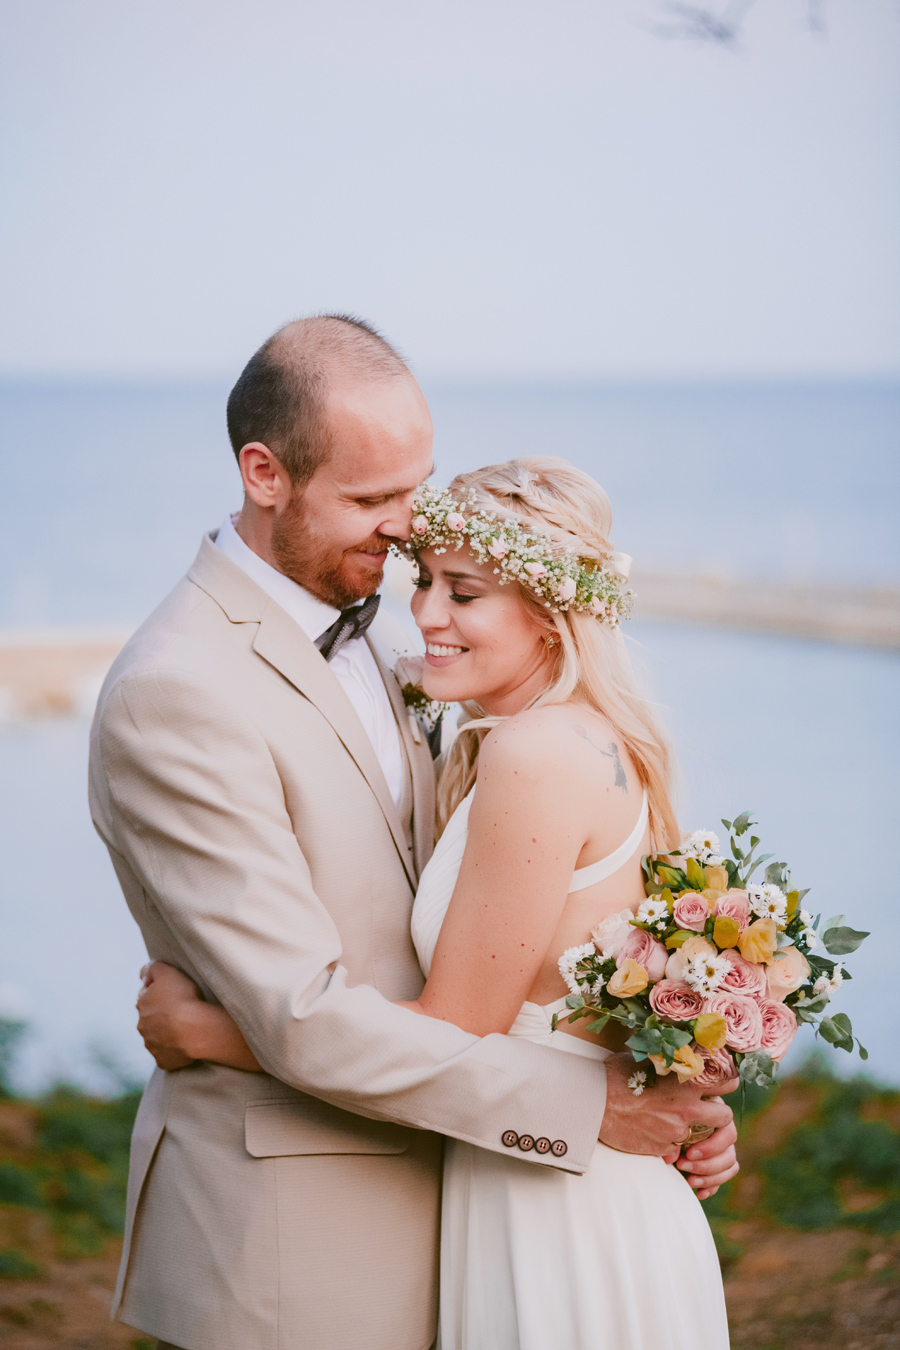 Giorgos & Zoe – A summer wedding full of love and dream catchers